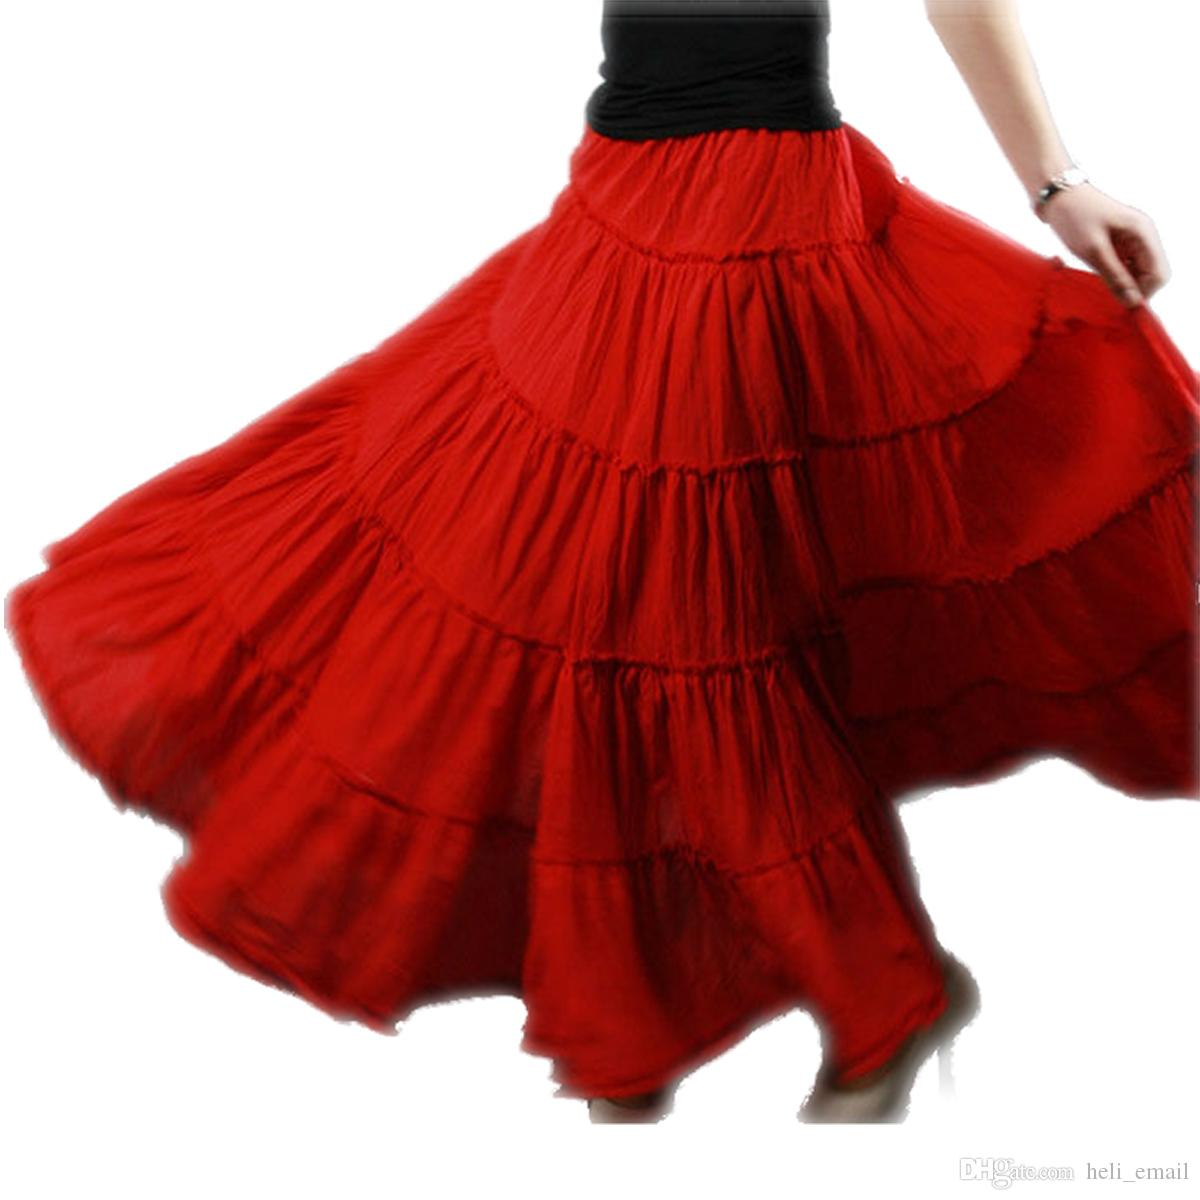 b5316451b35ce 2019 Summer 5 Layer Stitching Gypsy Bohemian BOHO Full Circle Cotton Maxi  Skirt Dancing Spain Pleated Long Skirts For Womens Red Black White From  Heli email ...